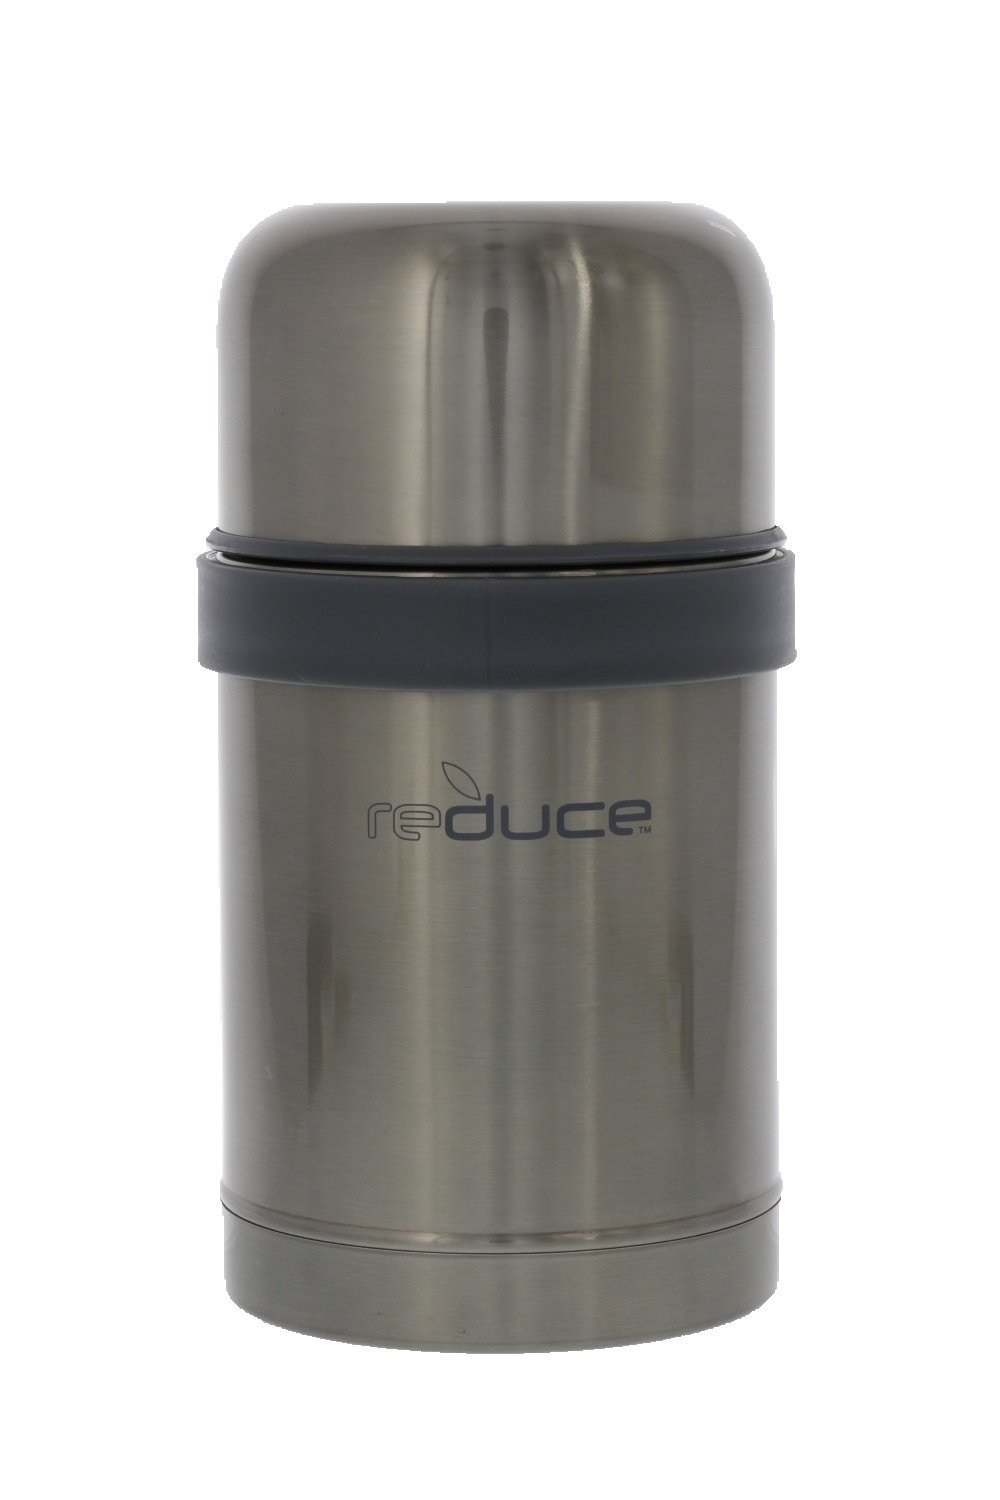 reduce Vacuum Insulated Stainless Steel Food Jar, 26 oz. - Grey